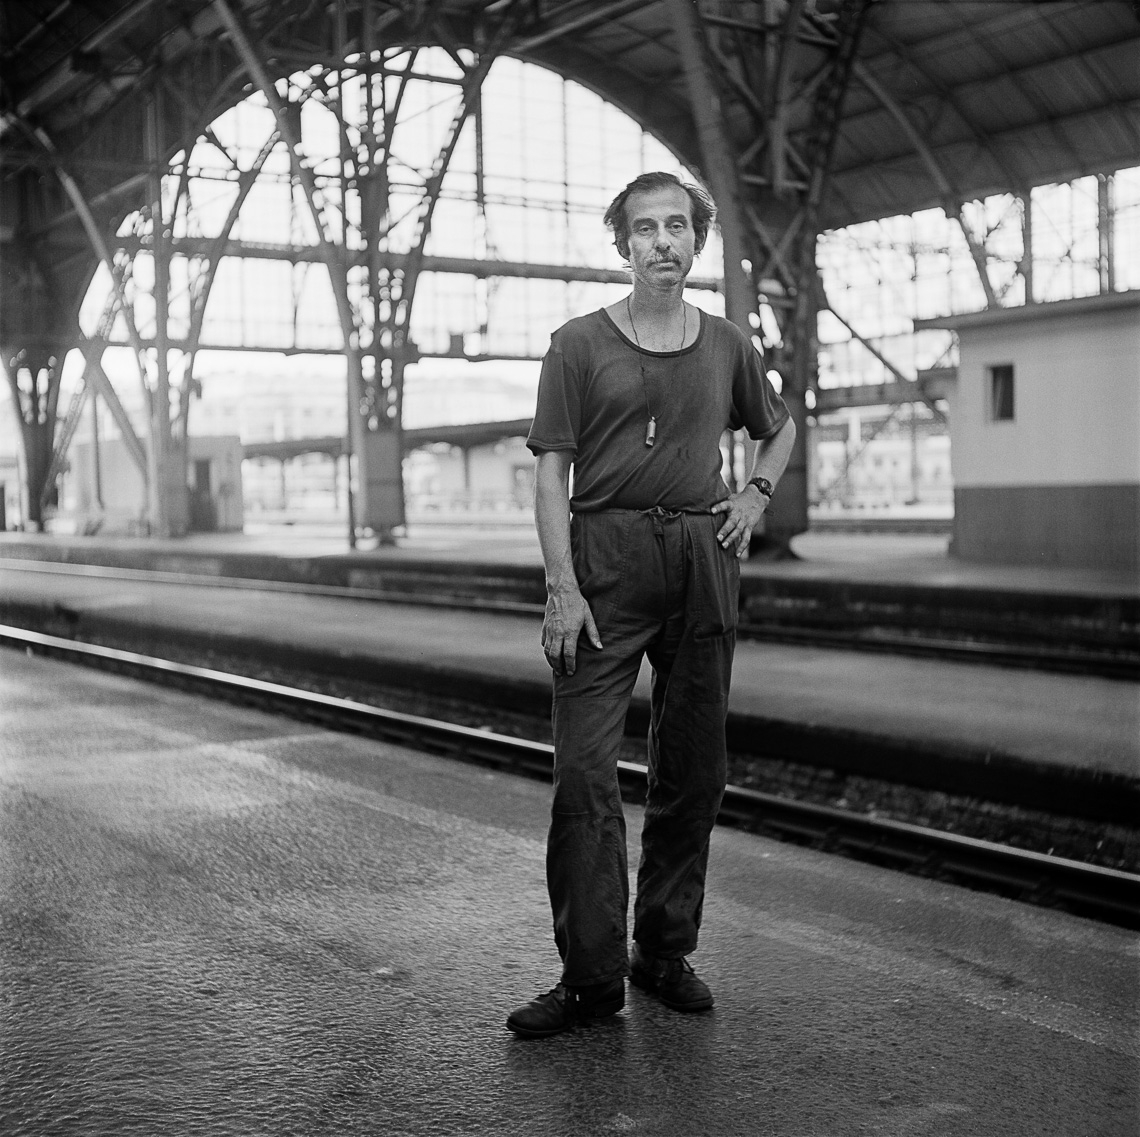 black-white-portrait-man-train-station